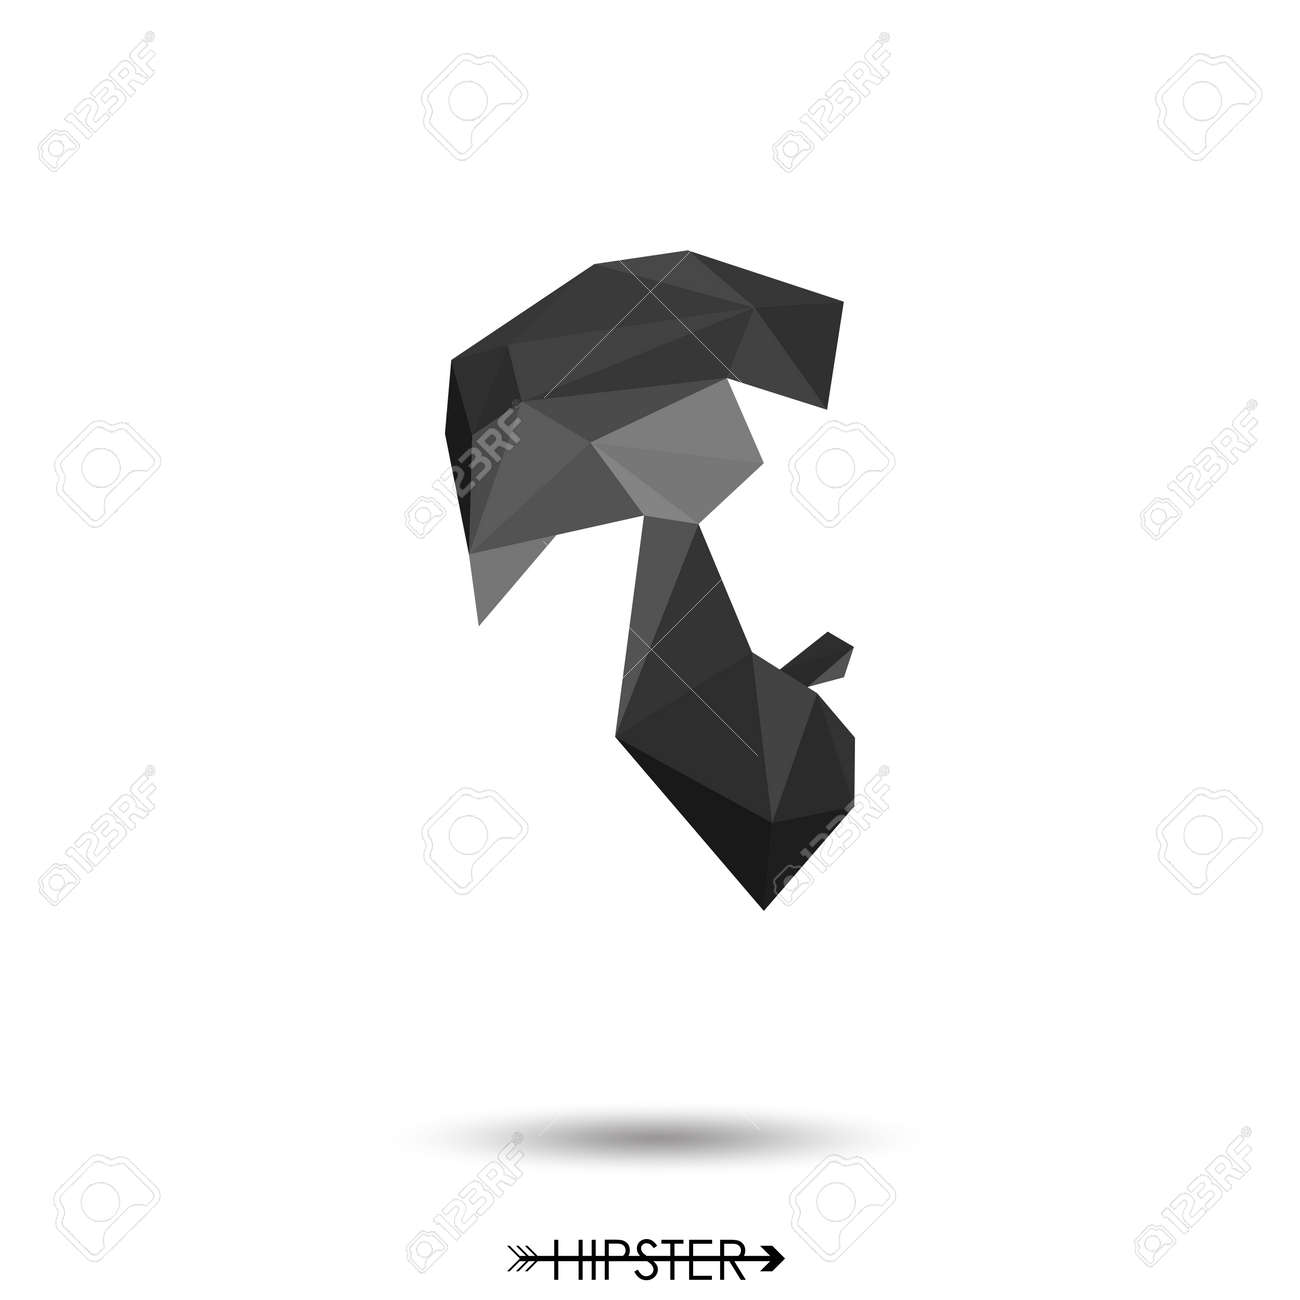 Hipster man low poly style hair and beard simple design for hipster man low poly style hair and beard simple design for logo silhouette jeuxipadfo Images